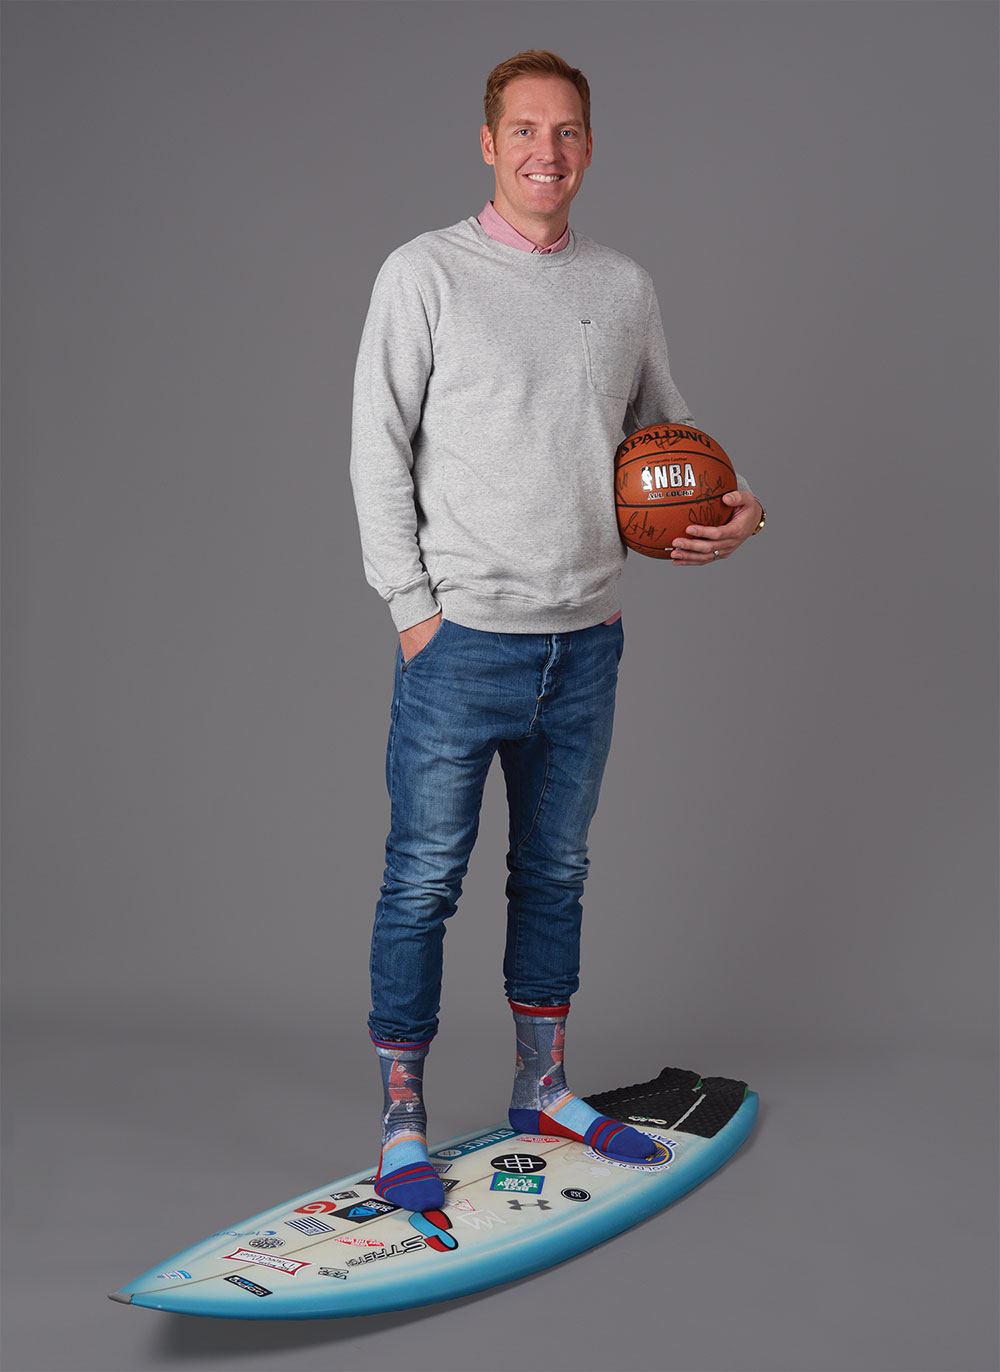 """SOCKSTAR: Travis Hansen celebrated """"white guys who can dunk"""" with his Brent Barry knee-highs. Barry won the 1996 NBA Slam Dunk Championships, which is the same year this 6-foot-6 Orem dunker was leading the Mountain View Bruins to the region championship. (Photo by Dave Blackhurst/UVBizQ)"""